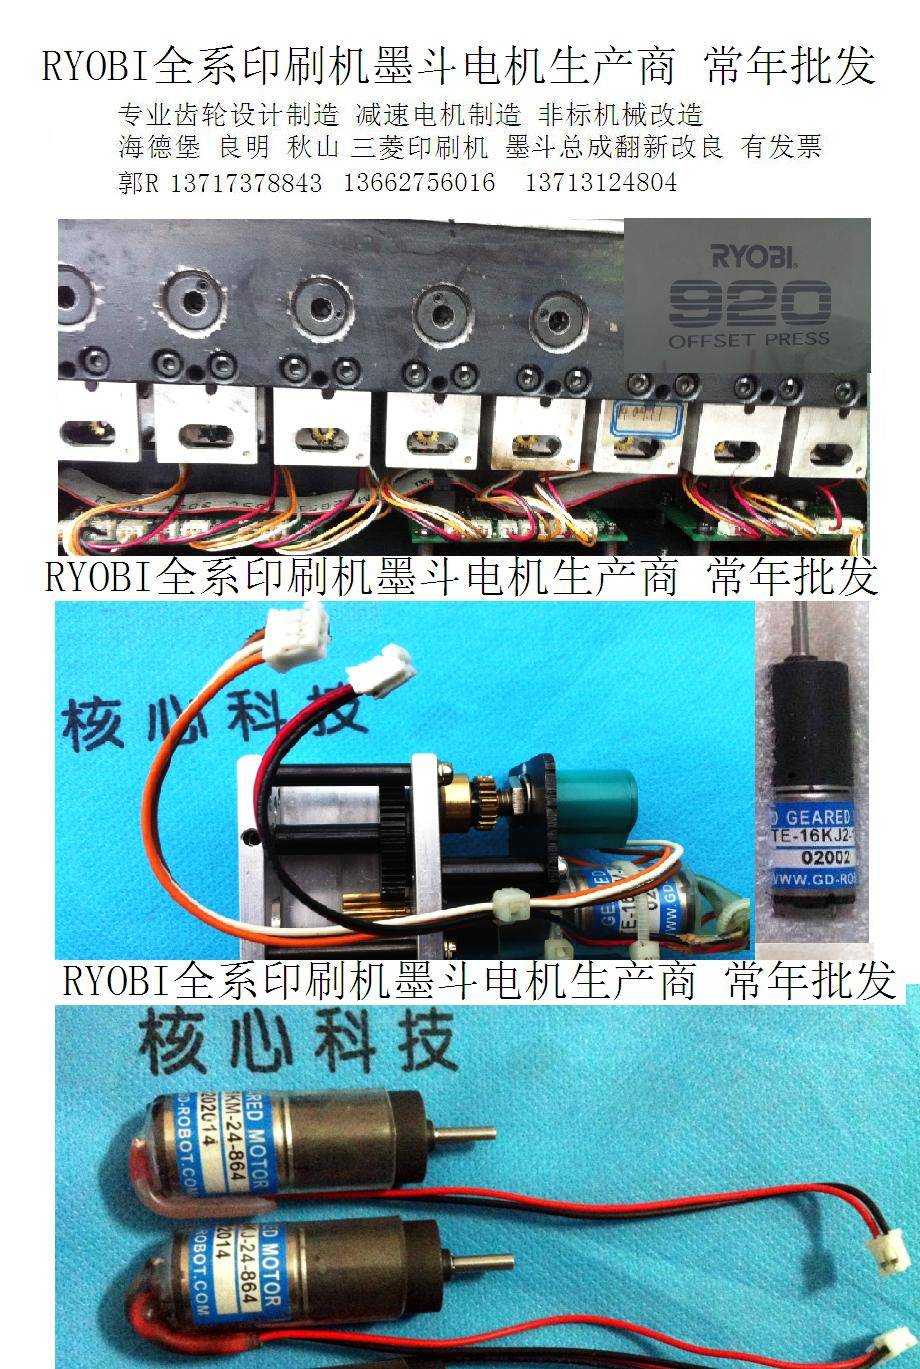 Supply &Repair Ryobi Ink Key Motor